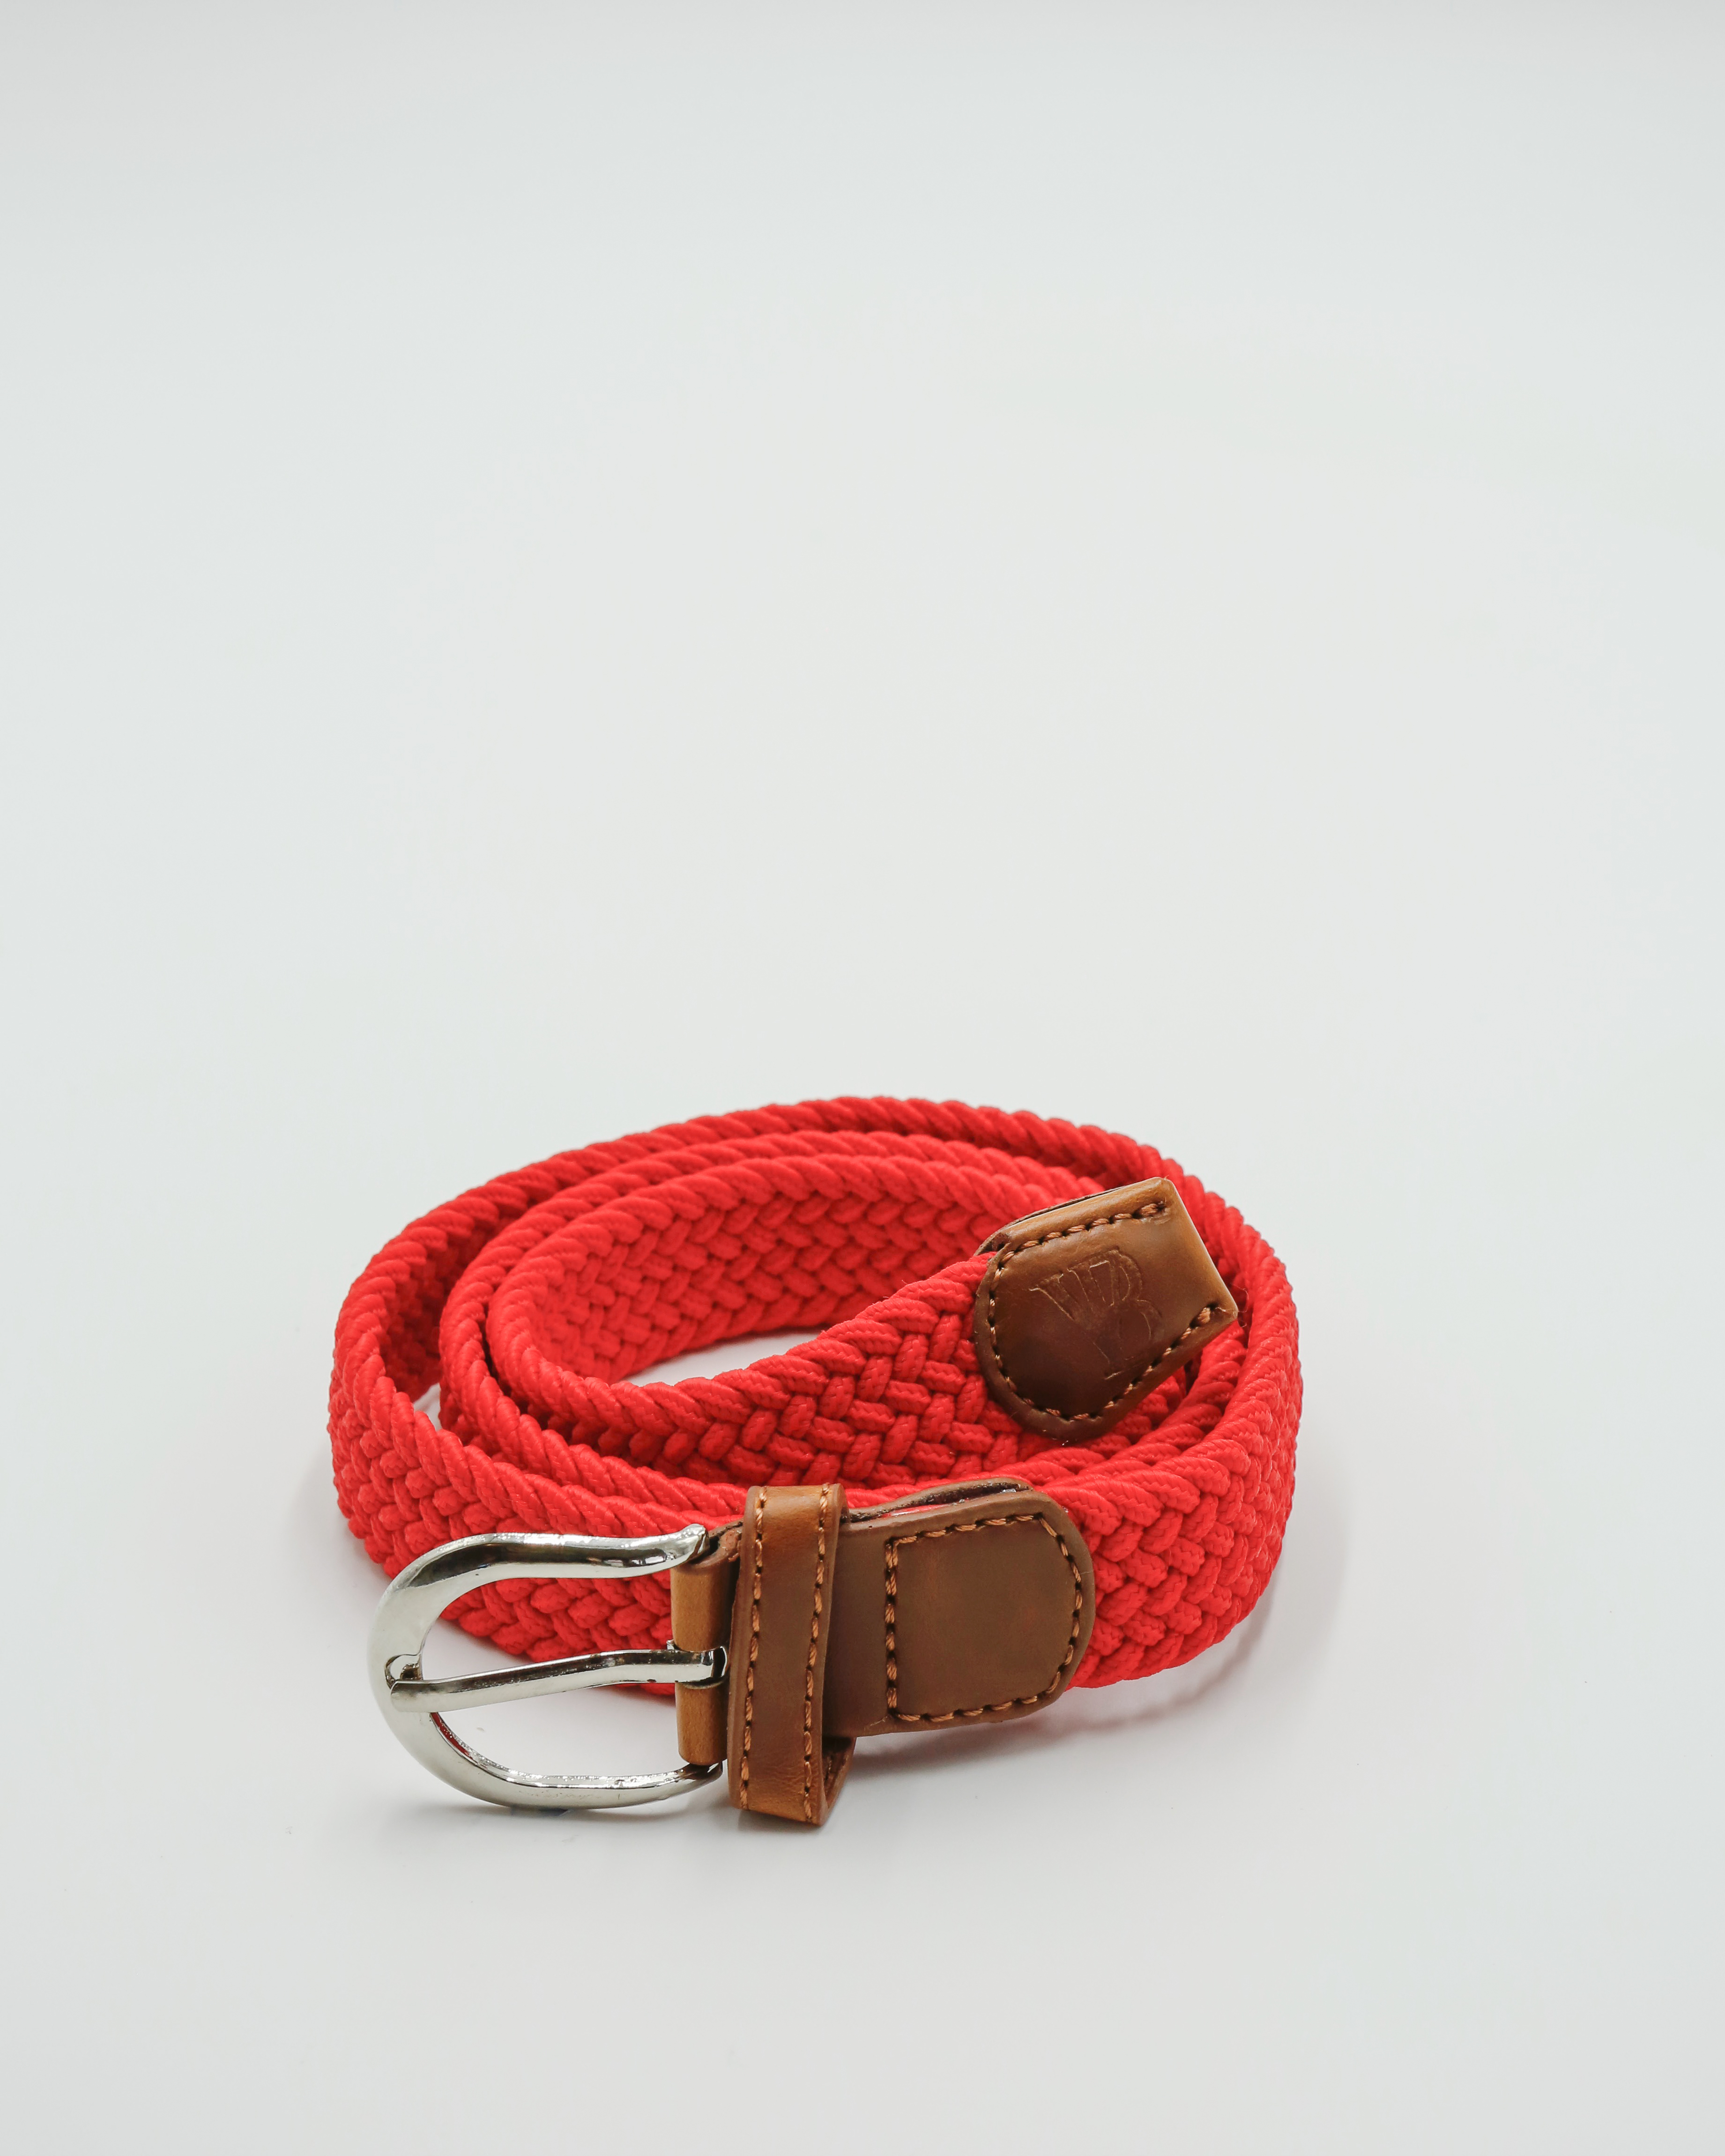 Childrens' Belts